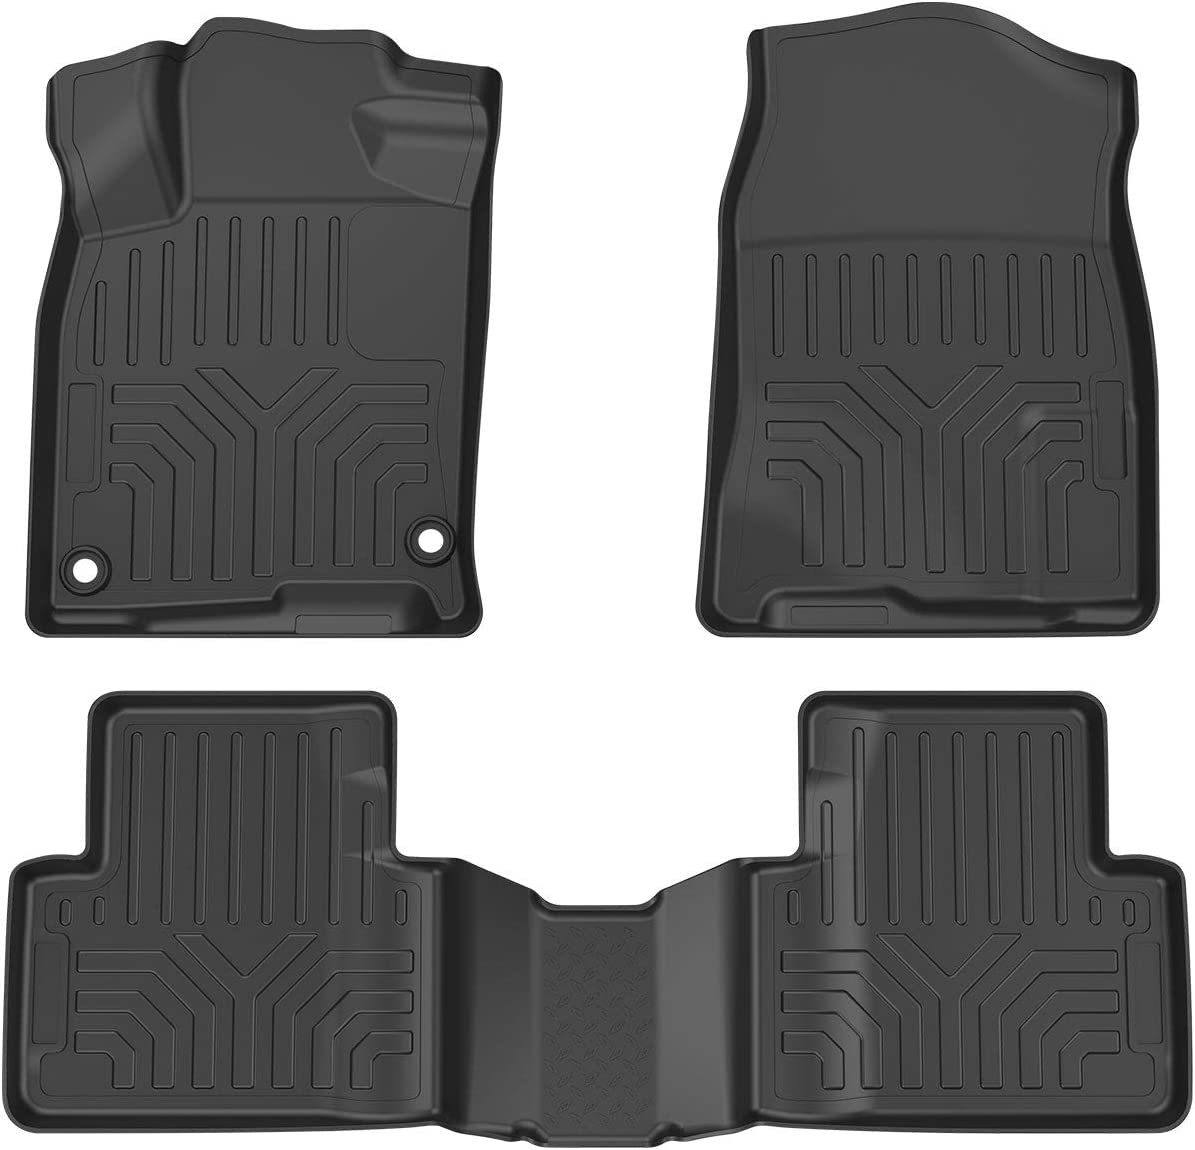 OsoTorero Floor Mats for 2016-2019 Honda Civic Sedan Hatchback Type R Full Set Liners TPE All-Weather Guard Includes 1st and 2nd Row: Front Rear